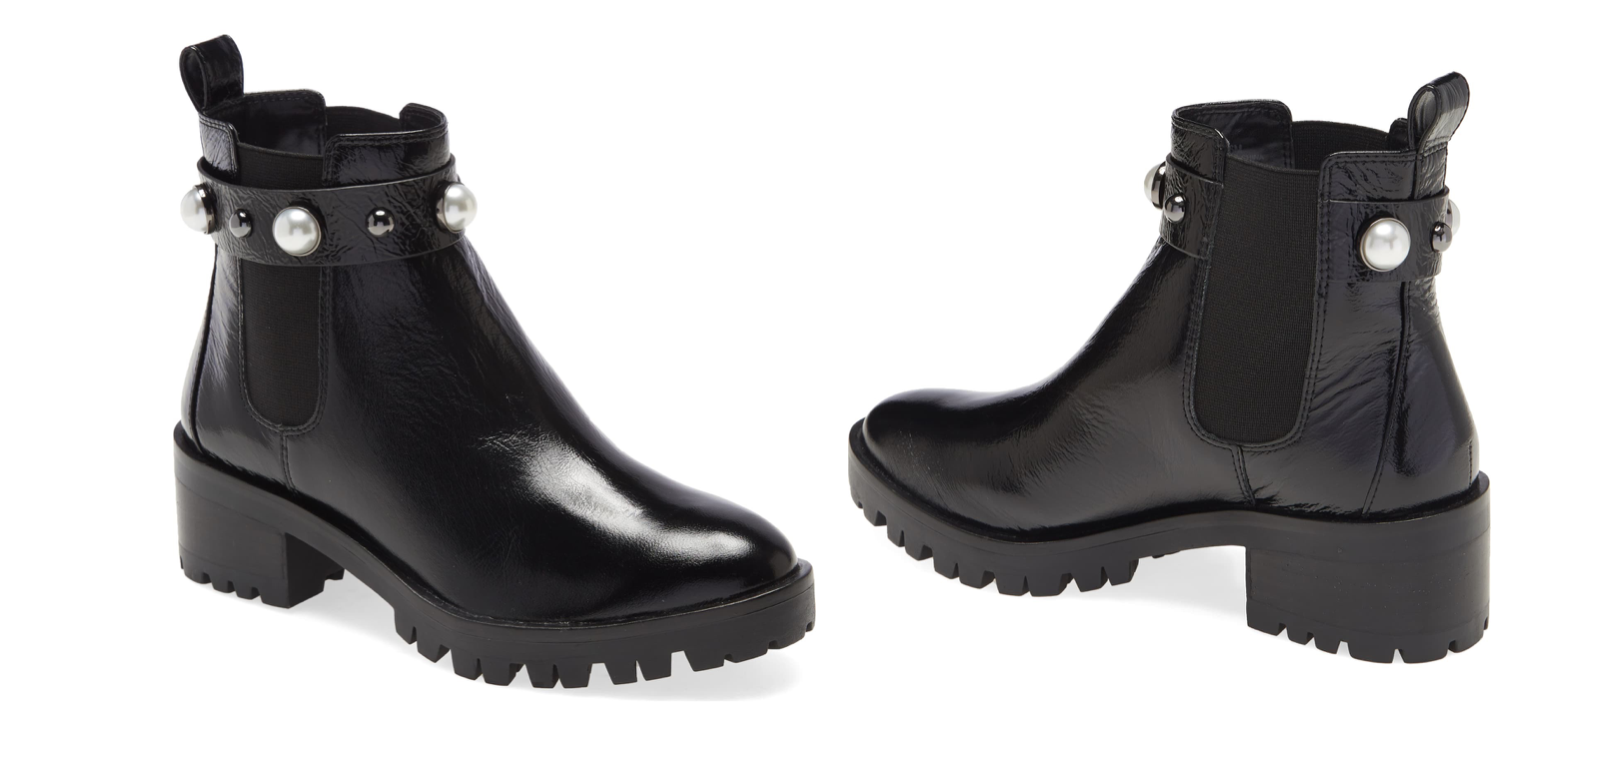 These Karl Lagerfeld Booties